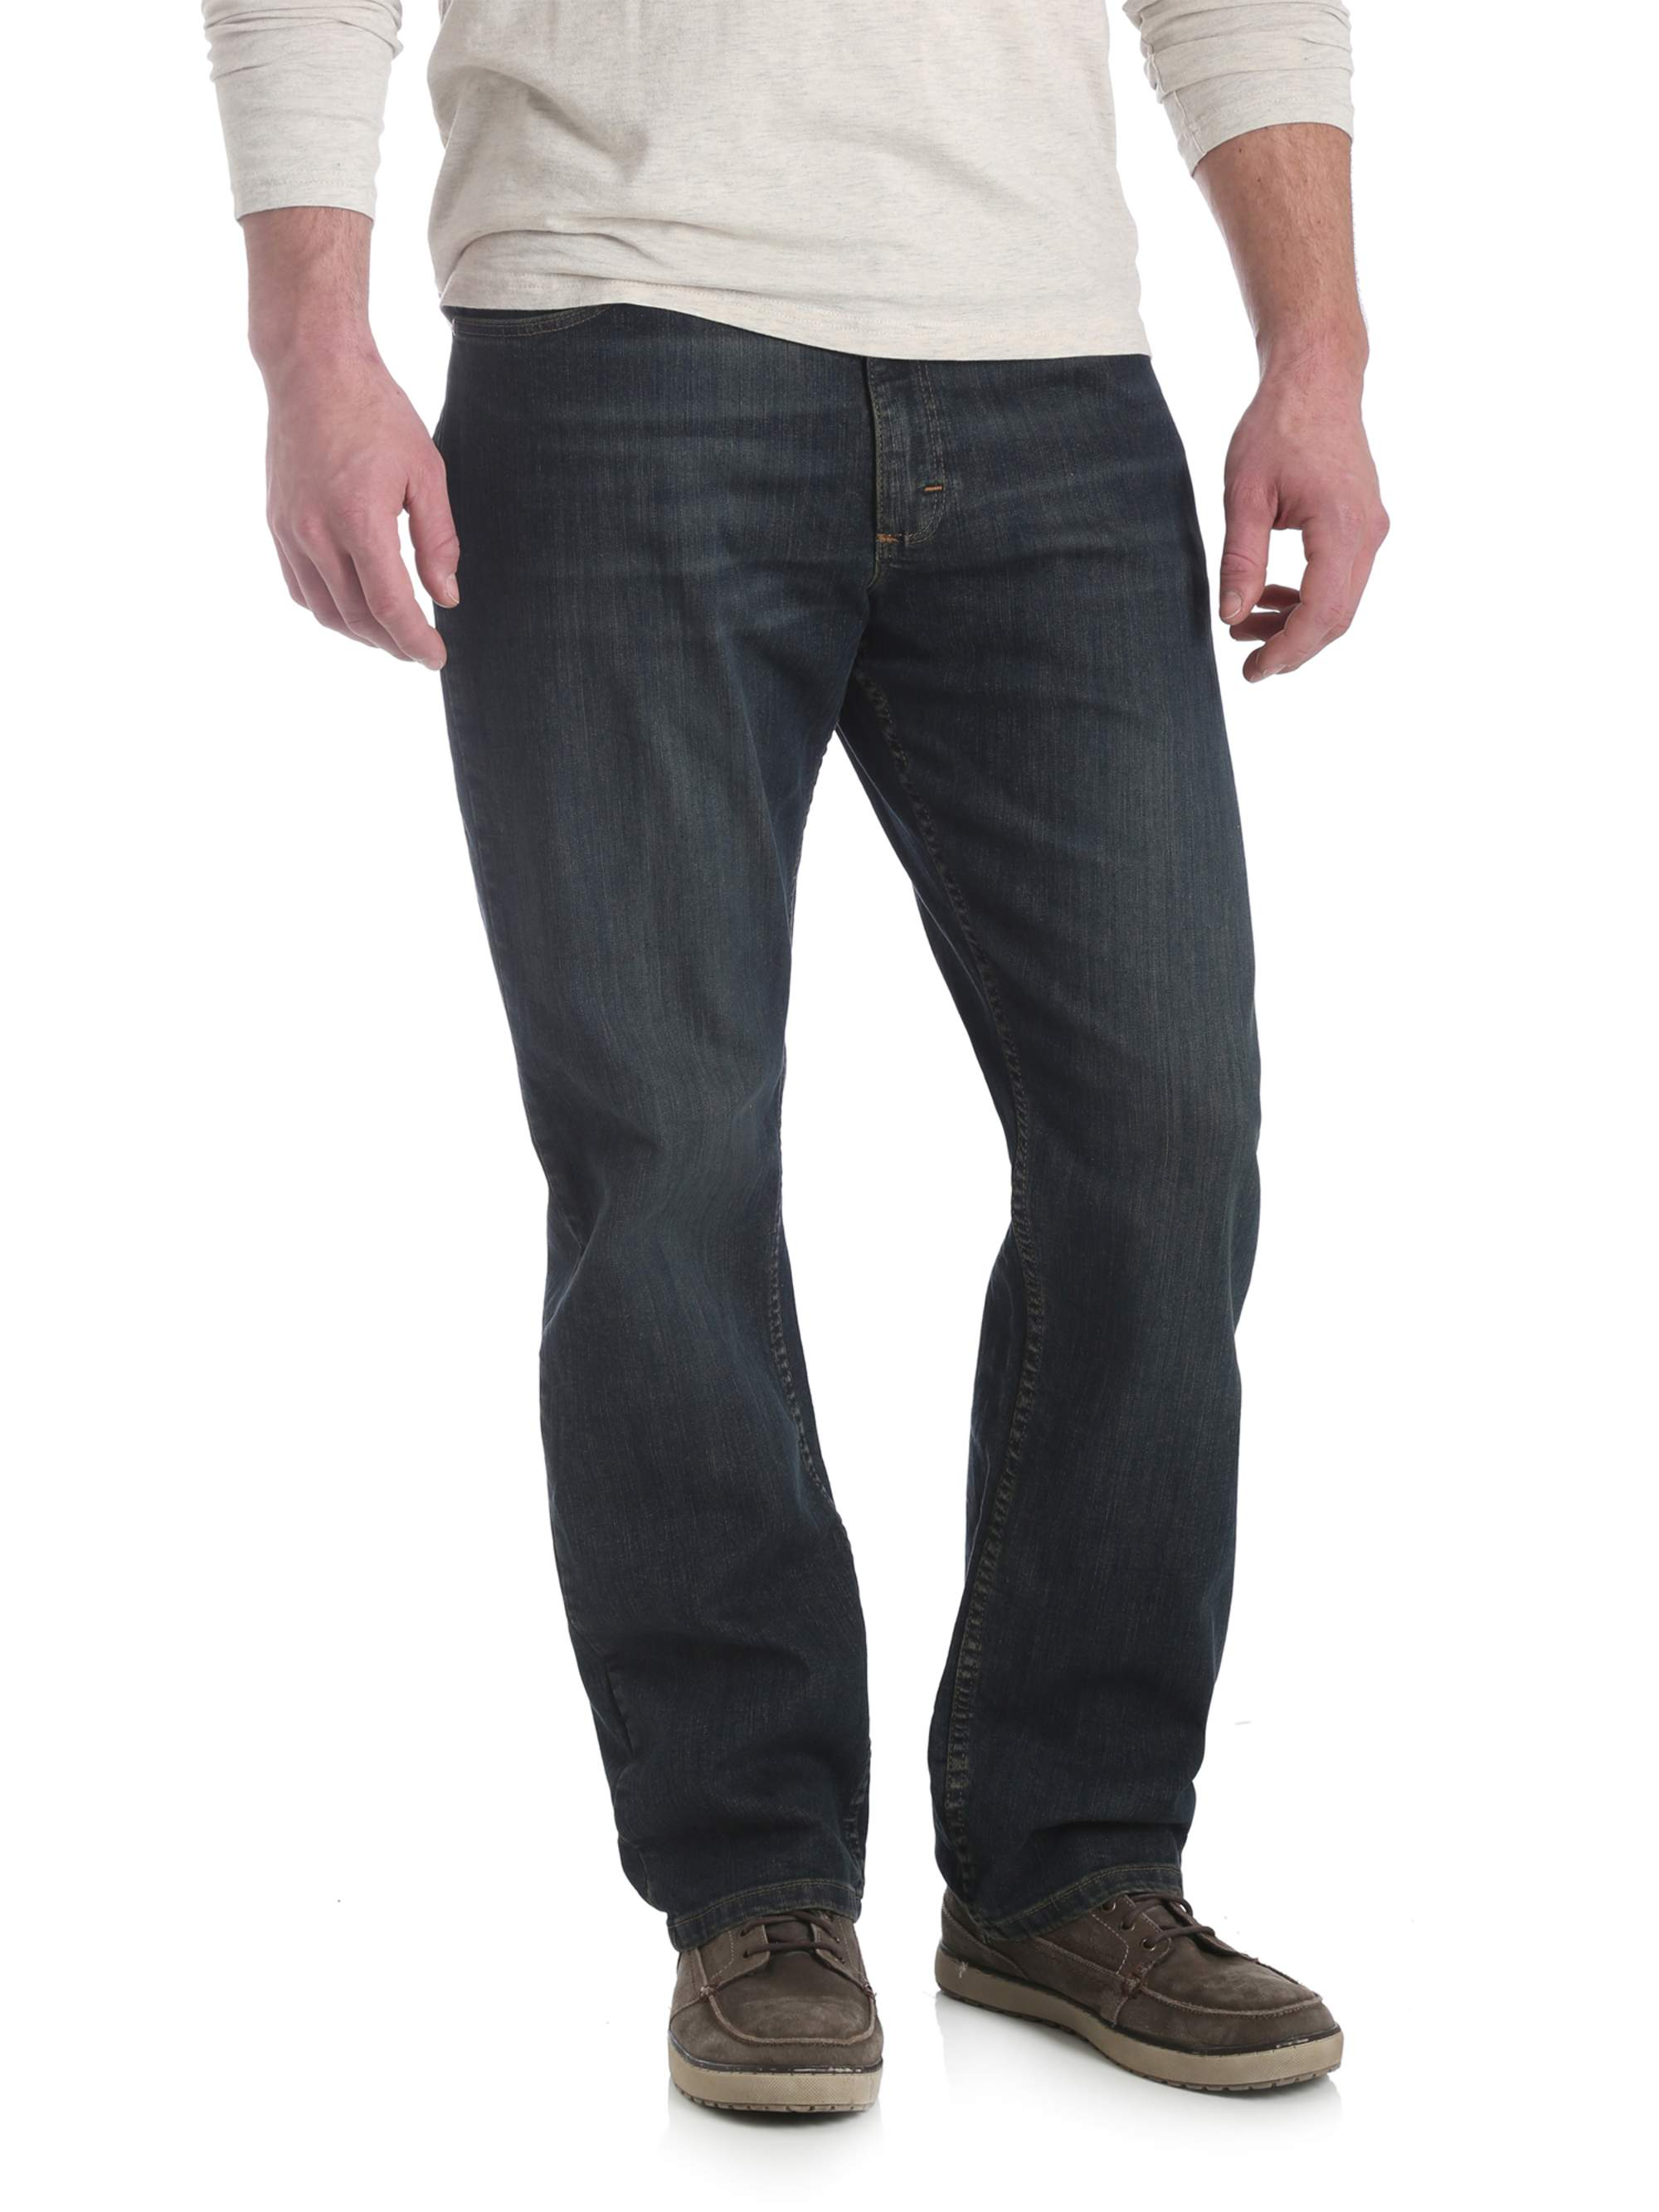 3c0fc1bf Wrangler - Wrangler Men's 5 Star Straight Fit Jean with Flex - Walmart.com